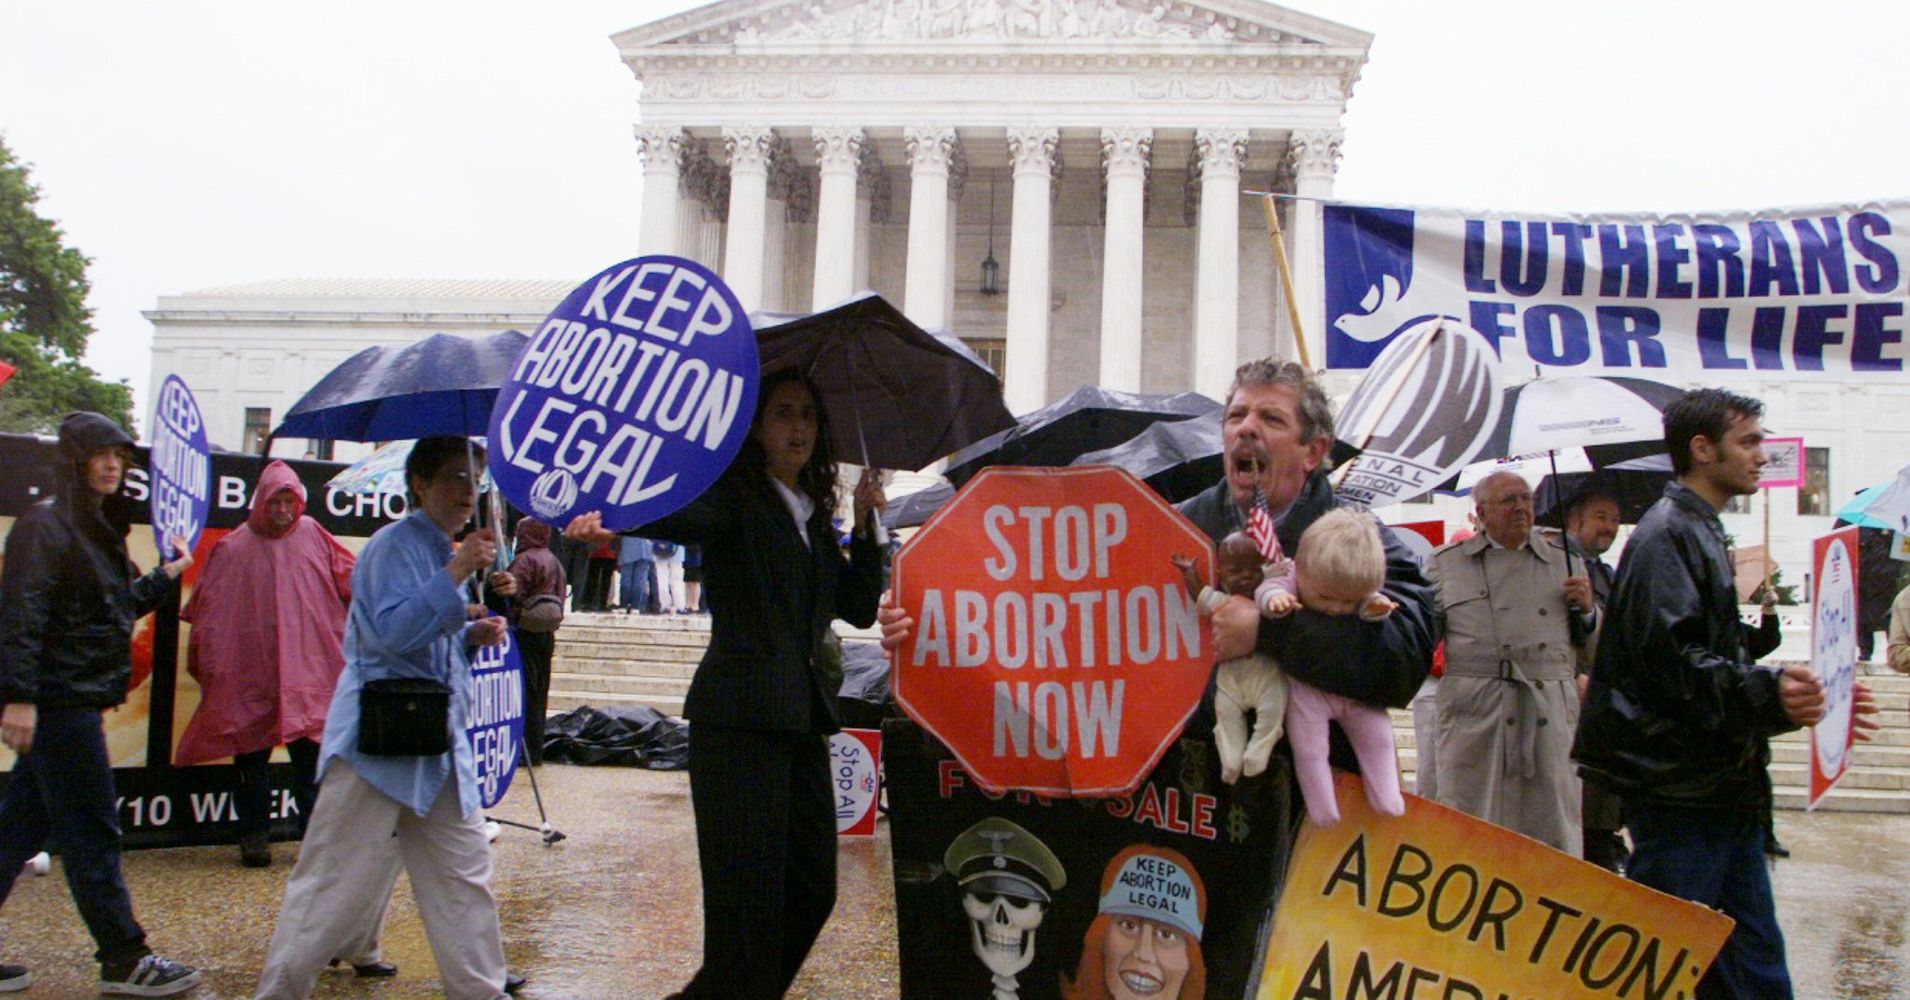 an argument against partial birth abortion